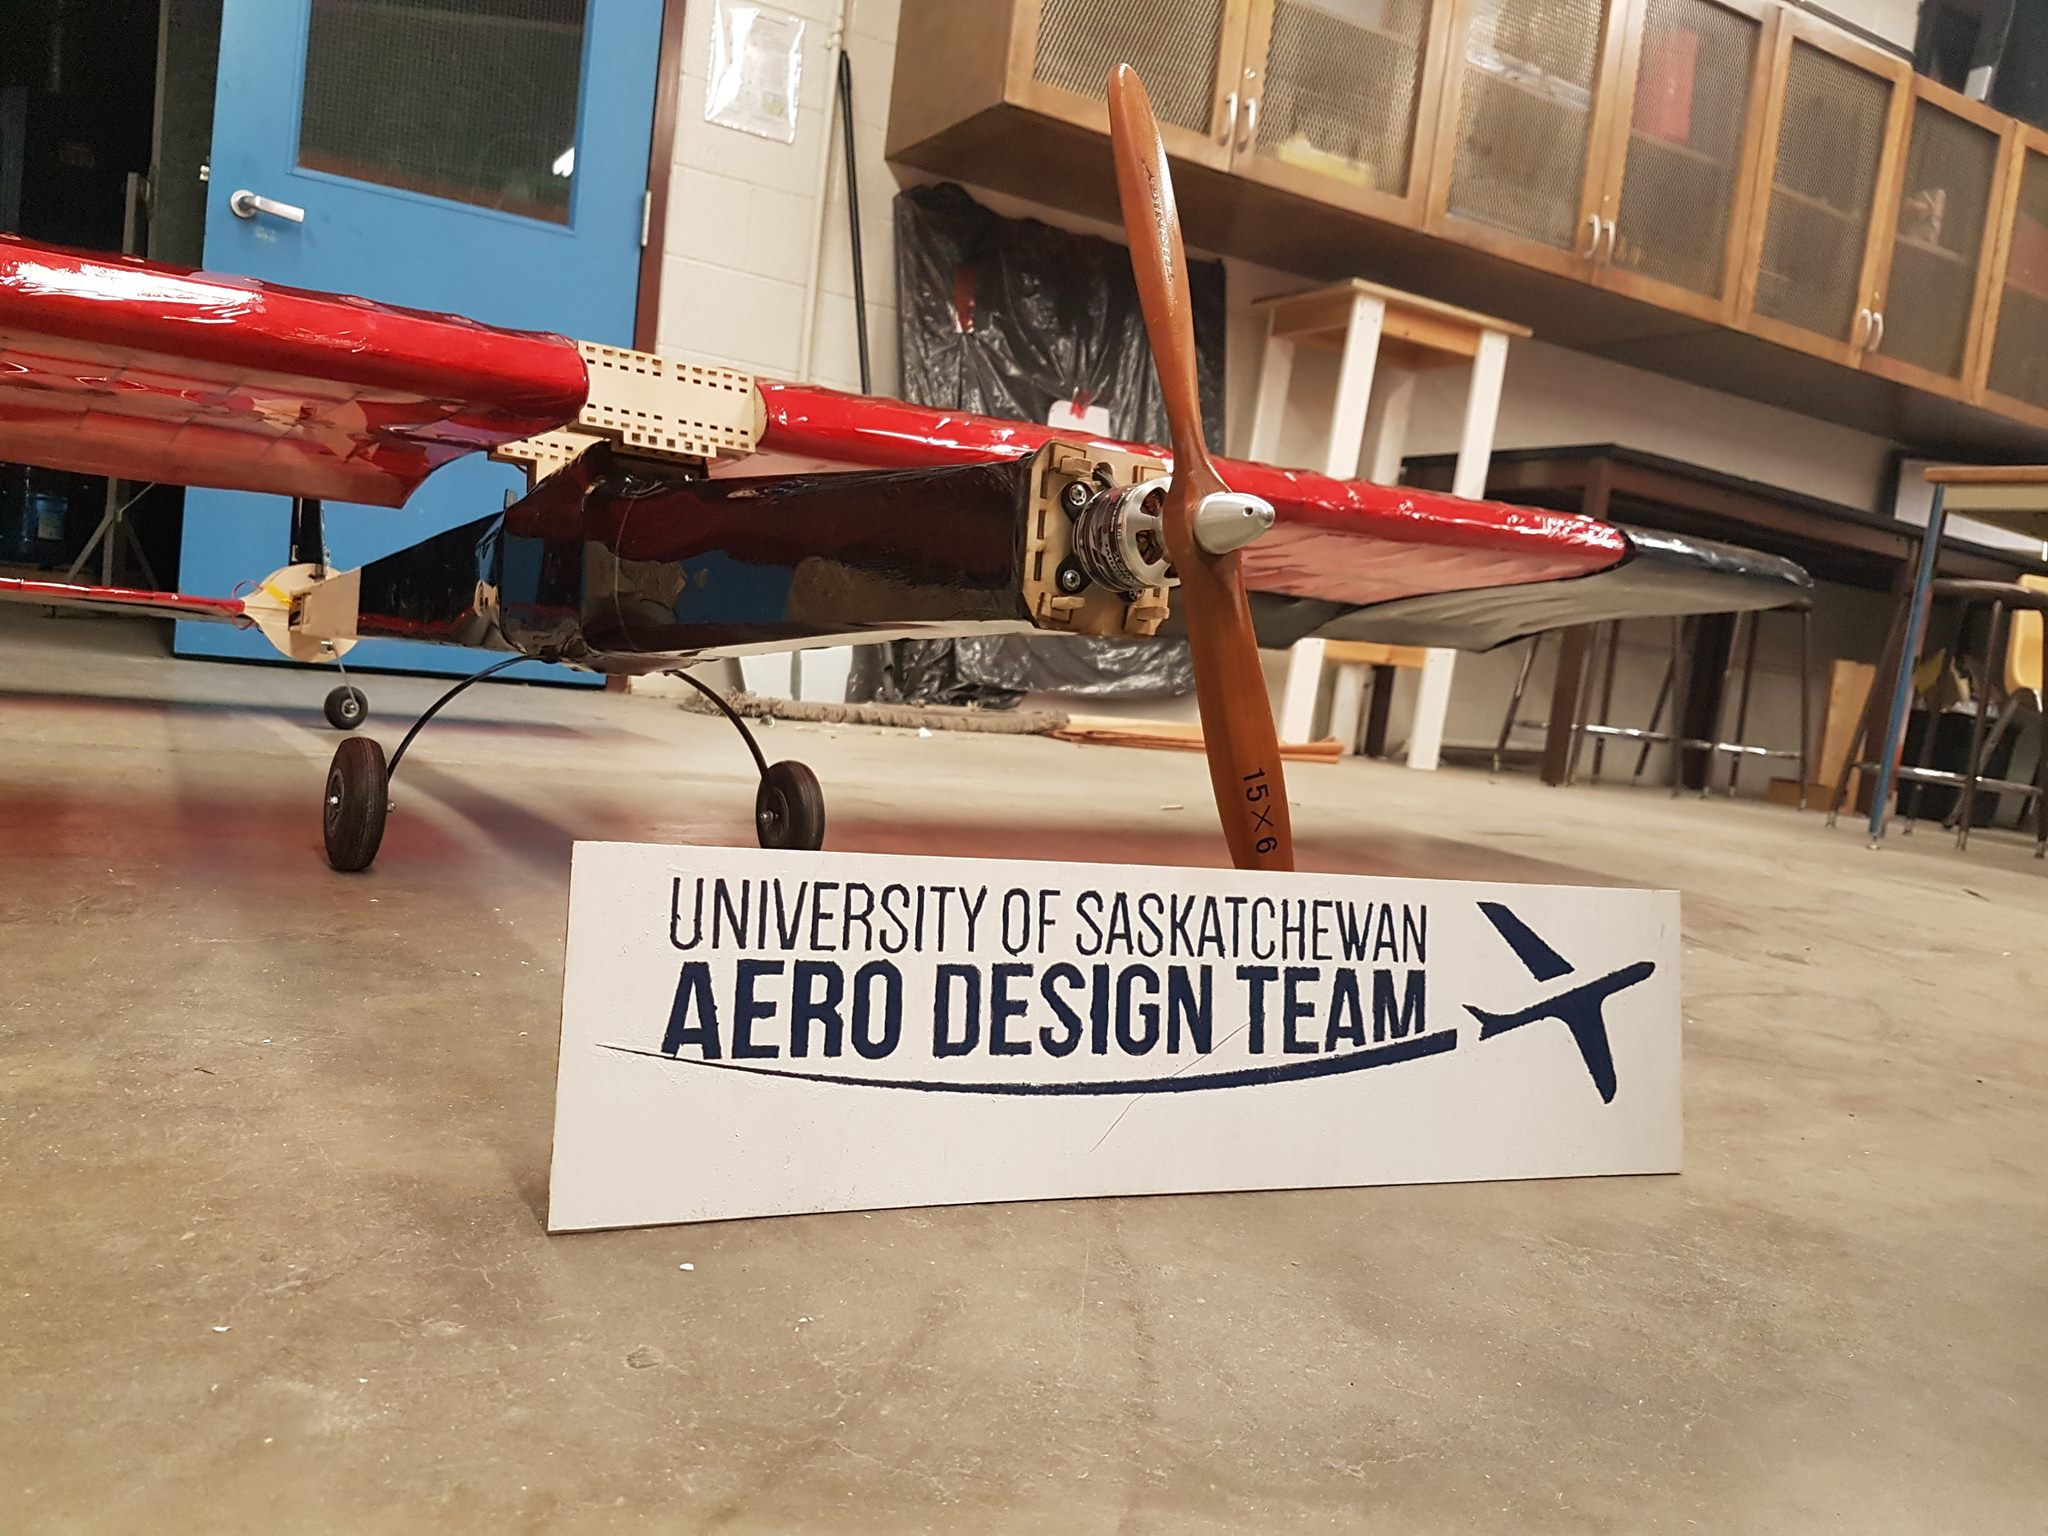 The U of S Aero Design Team's balsa wood aircraft design